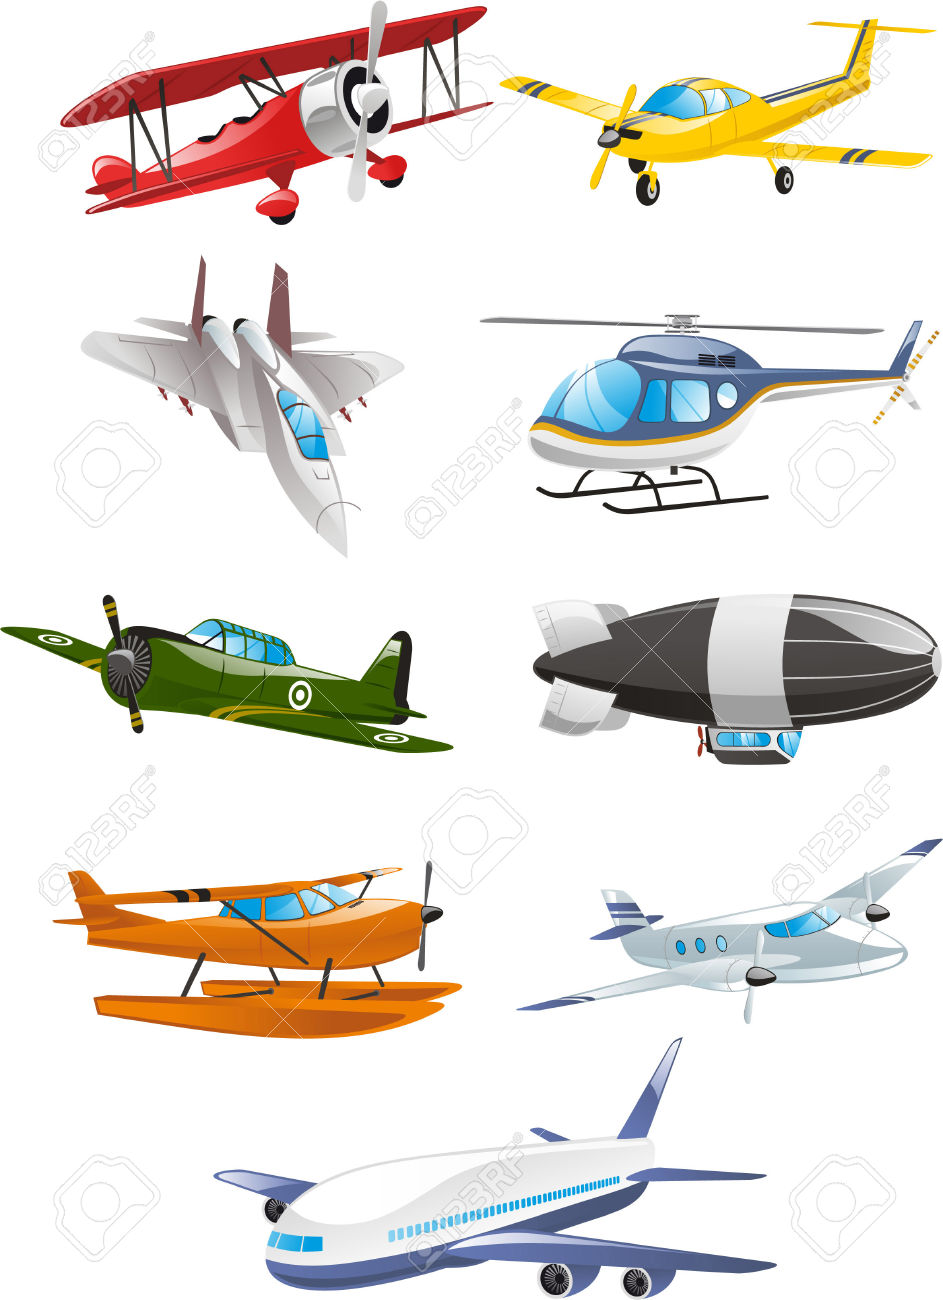 Airplane Collection, With Aircraft, Airbus, Airliner, Large.